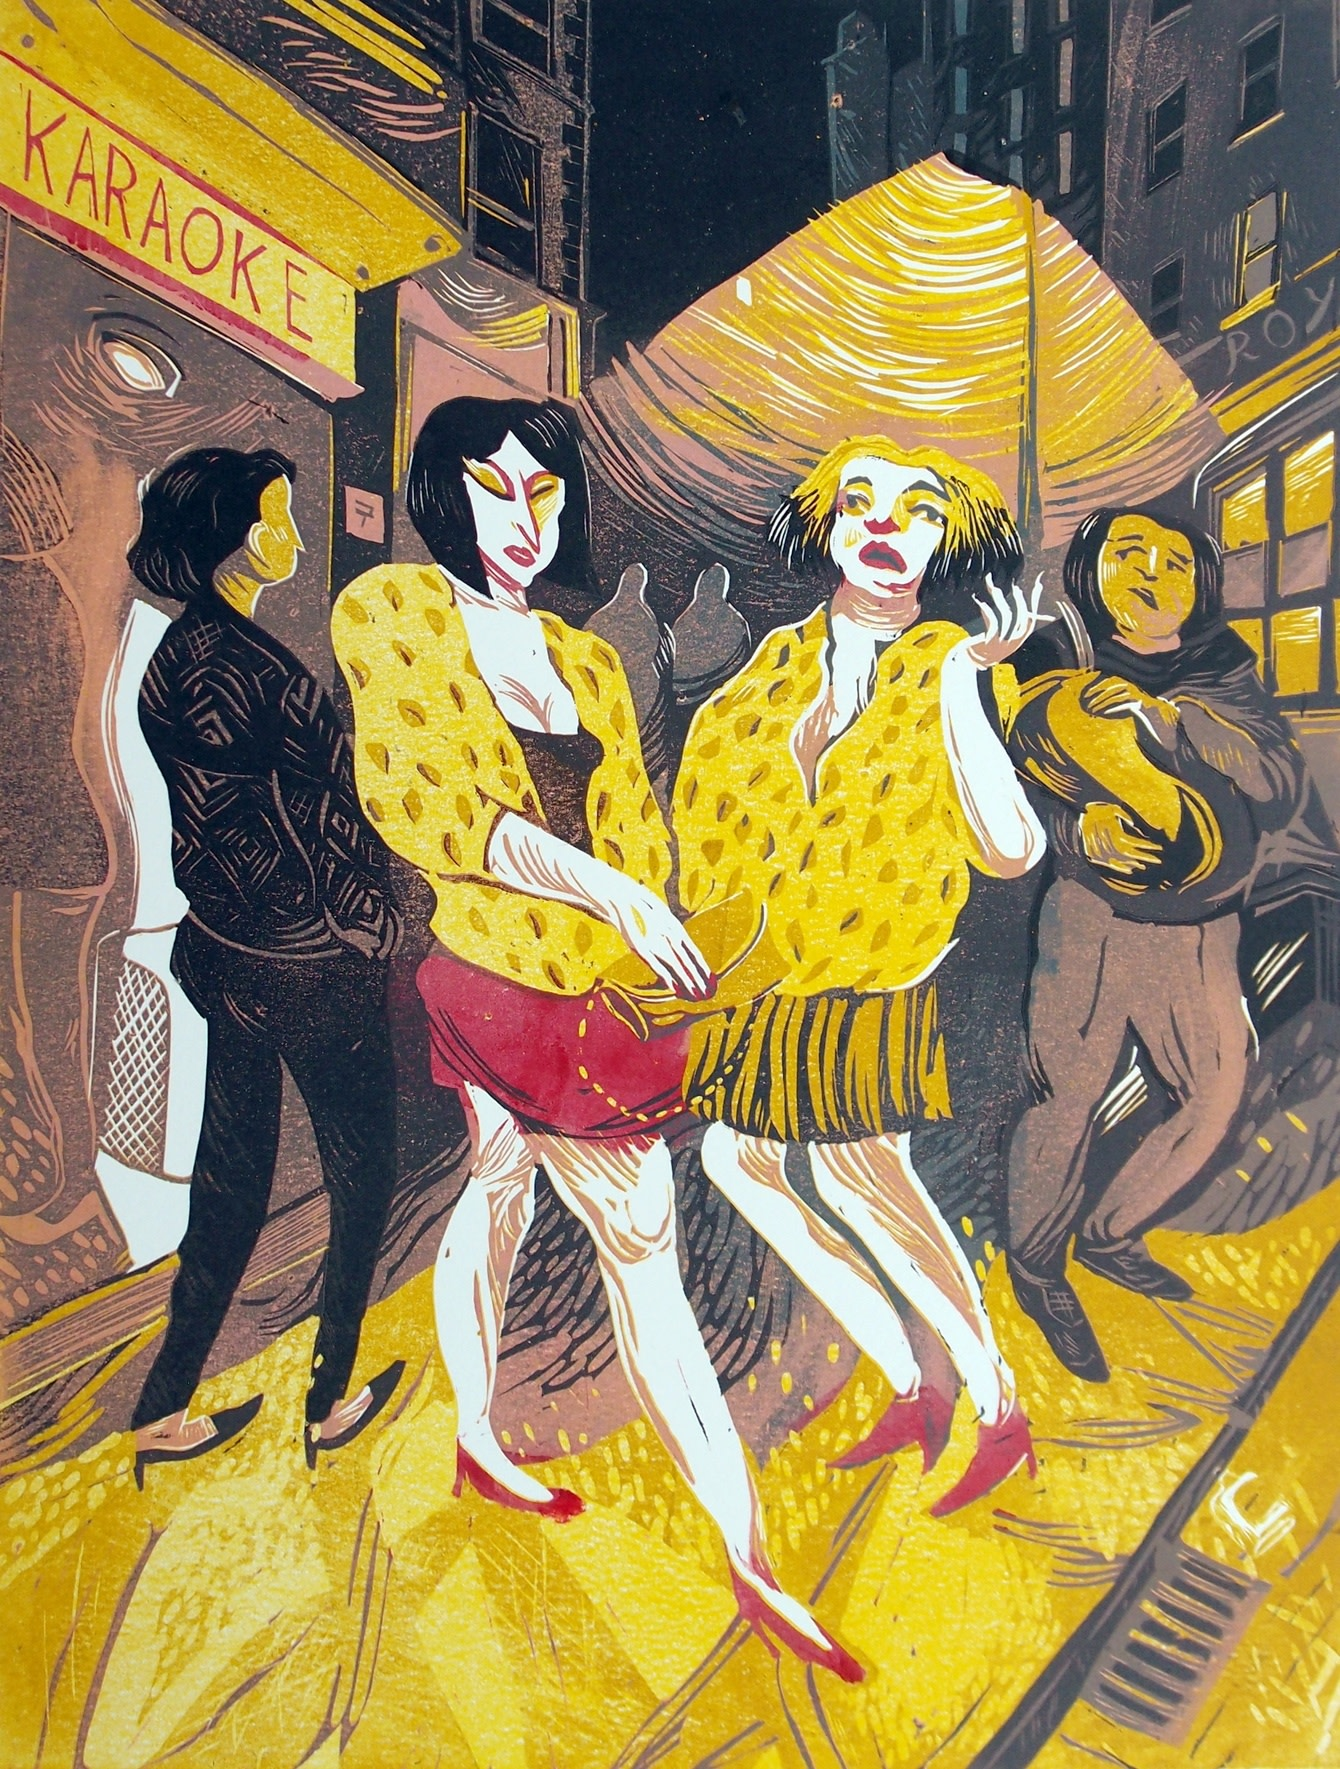 """<span class=""""link fancybox-details-link""""><a href=""""/exhibitions/17/works/image_standalone619/"""">View Detail Page</a></span><p><strong>James Albon</strong></p><p>Ladies in Leopard Print</p><p>reduction linocut, ed of 6</p><p>45 x 60cm</p><p>£600 framed</p><p>£500 unframed</p><p></p>"""